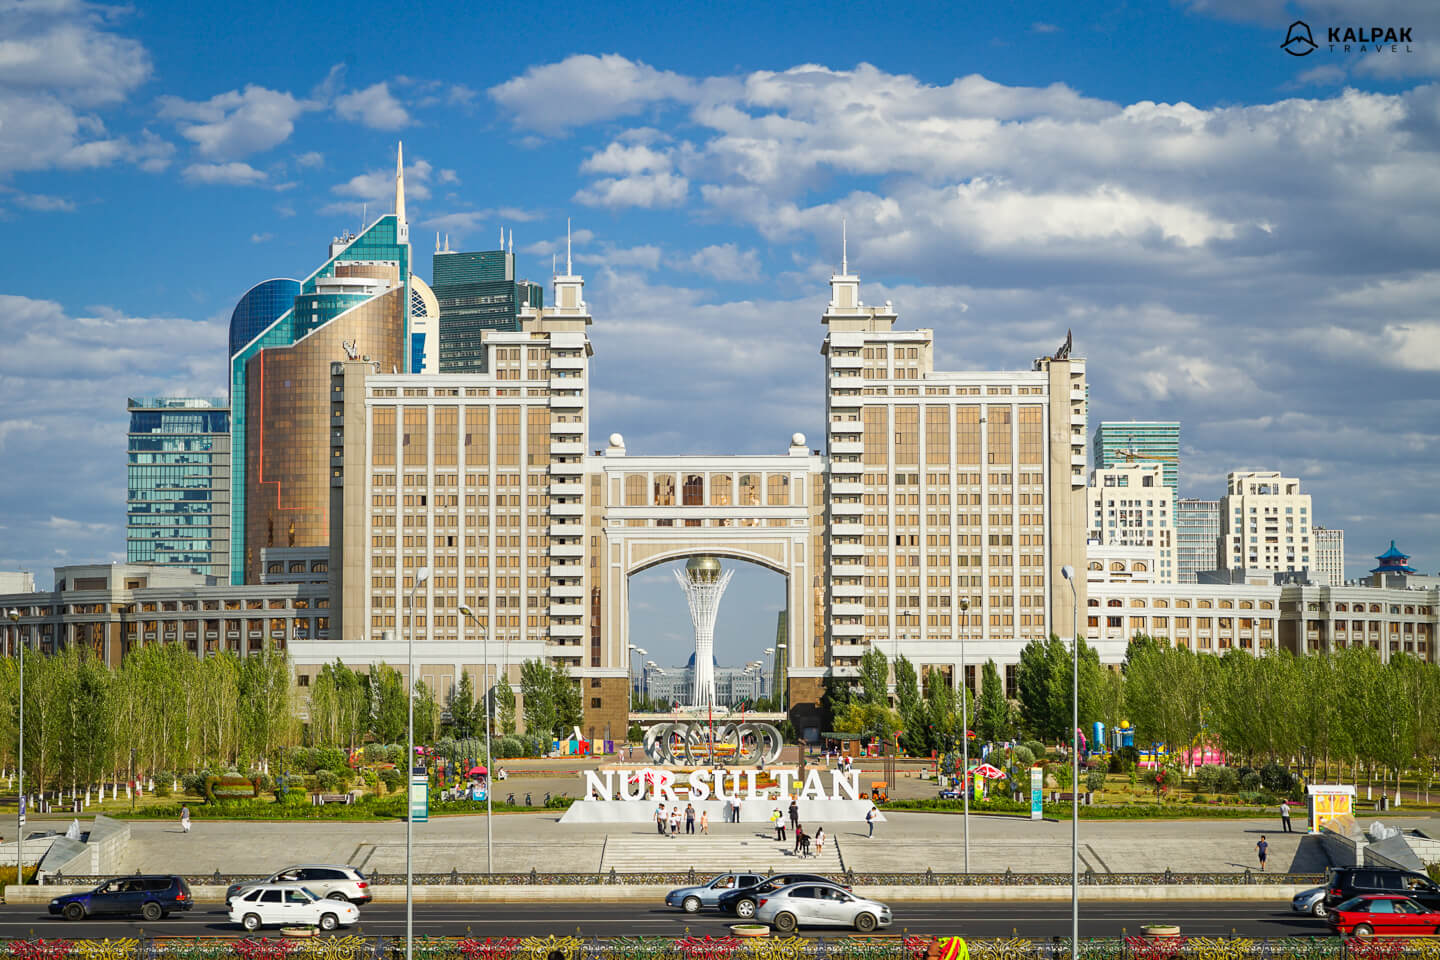 Nur-Sultan is the capital of Kazakhstan